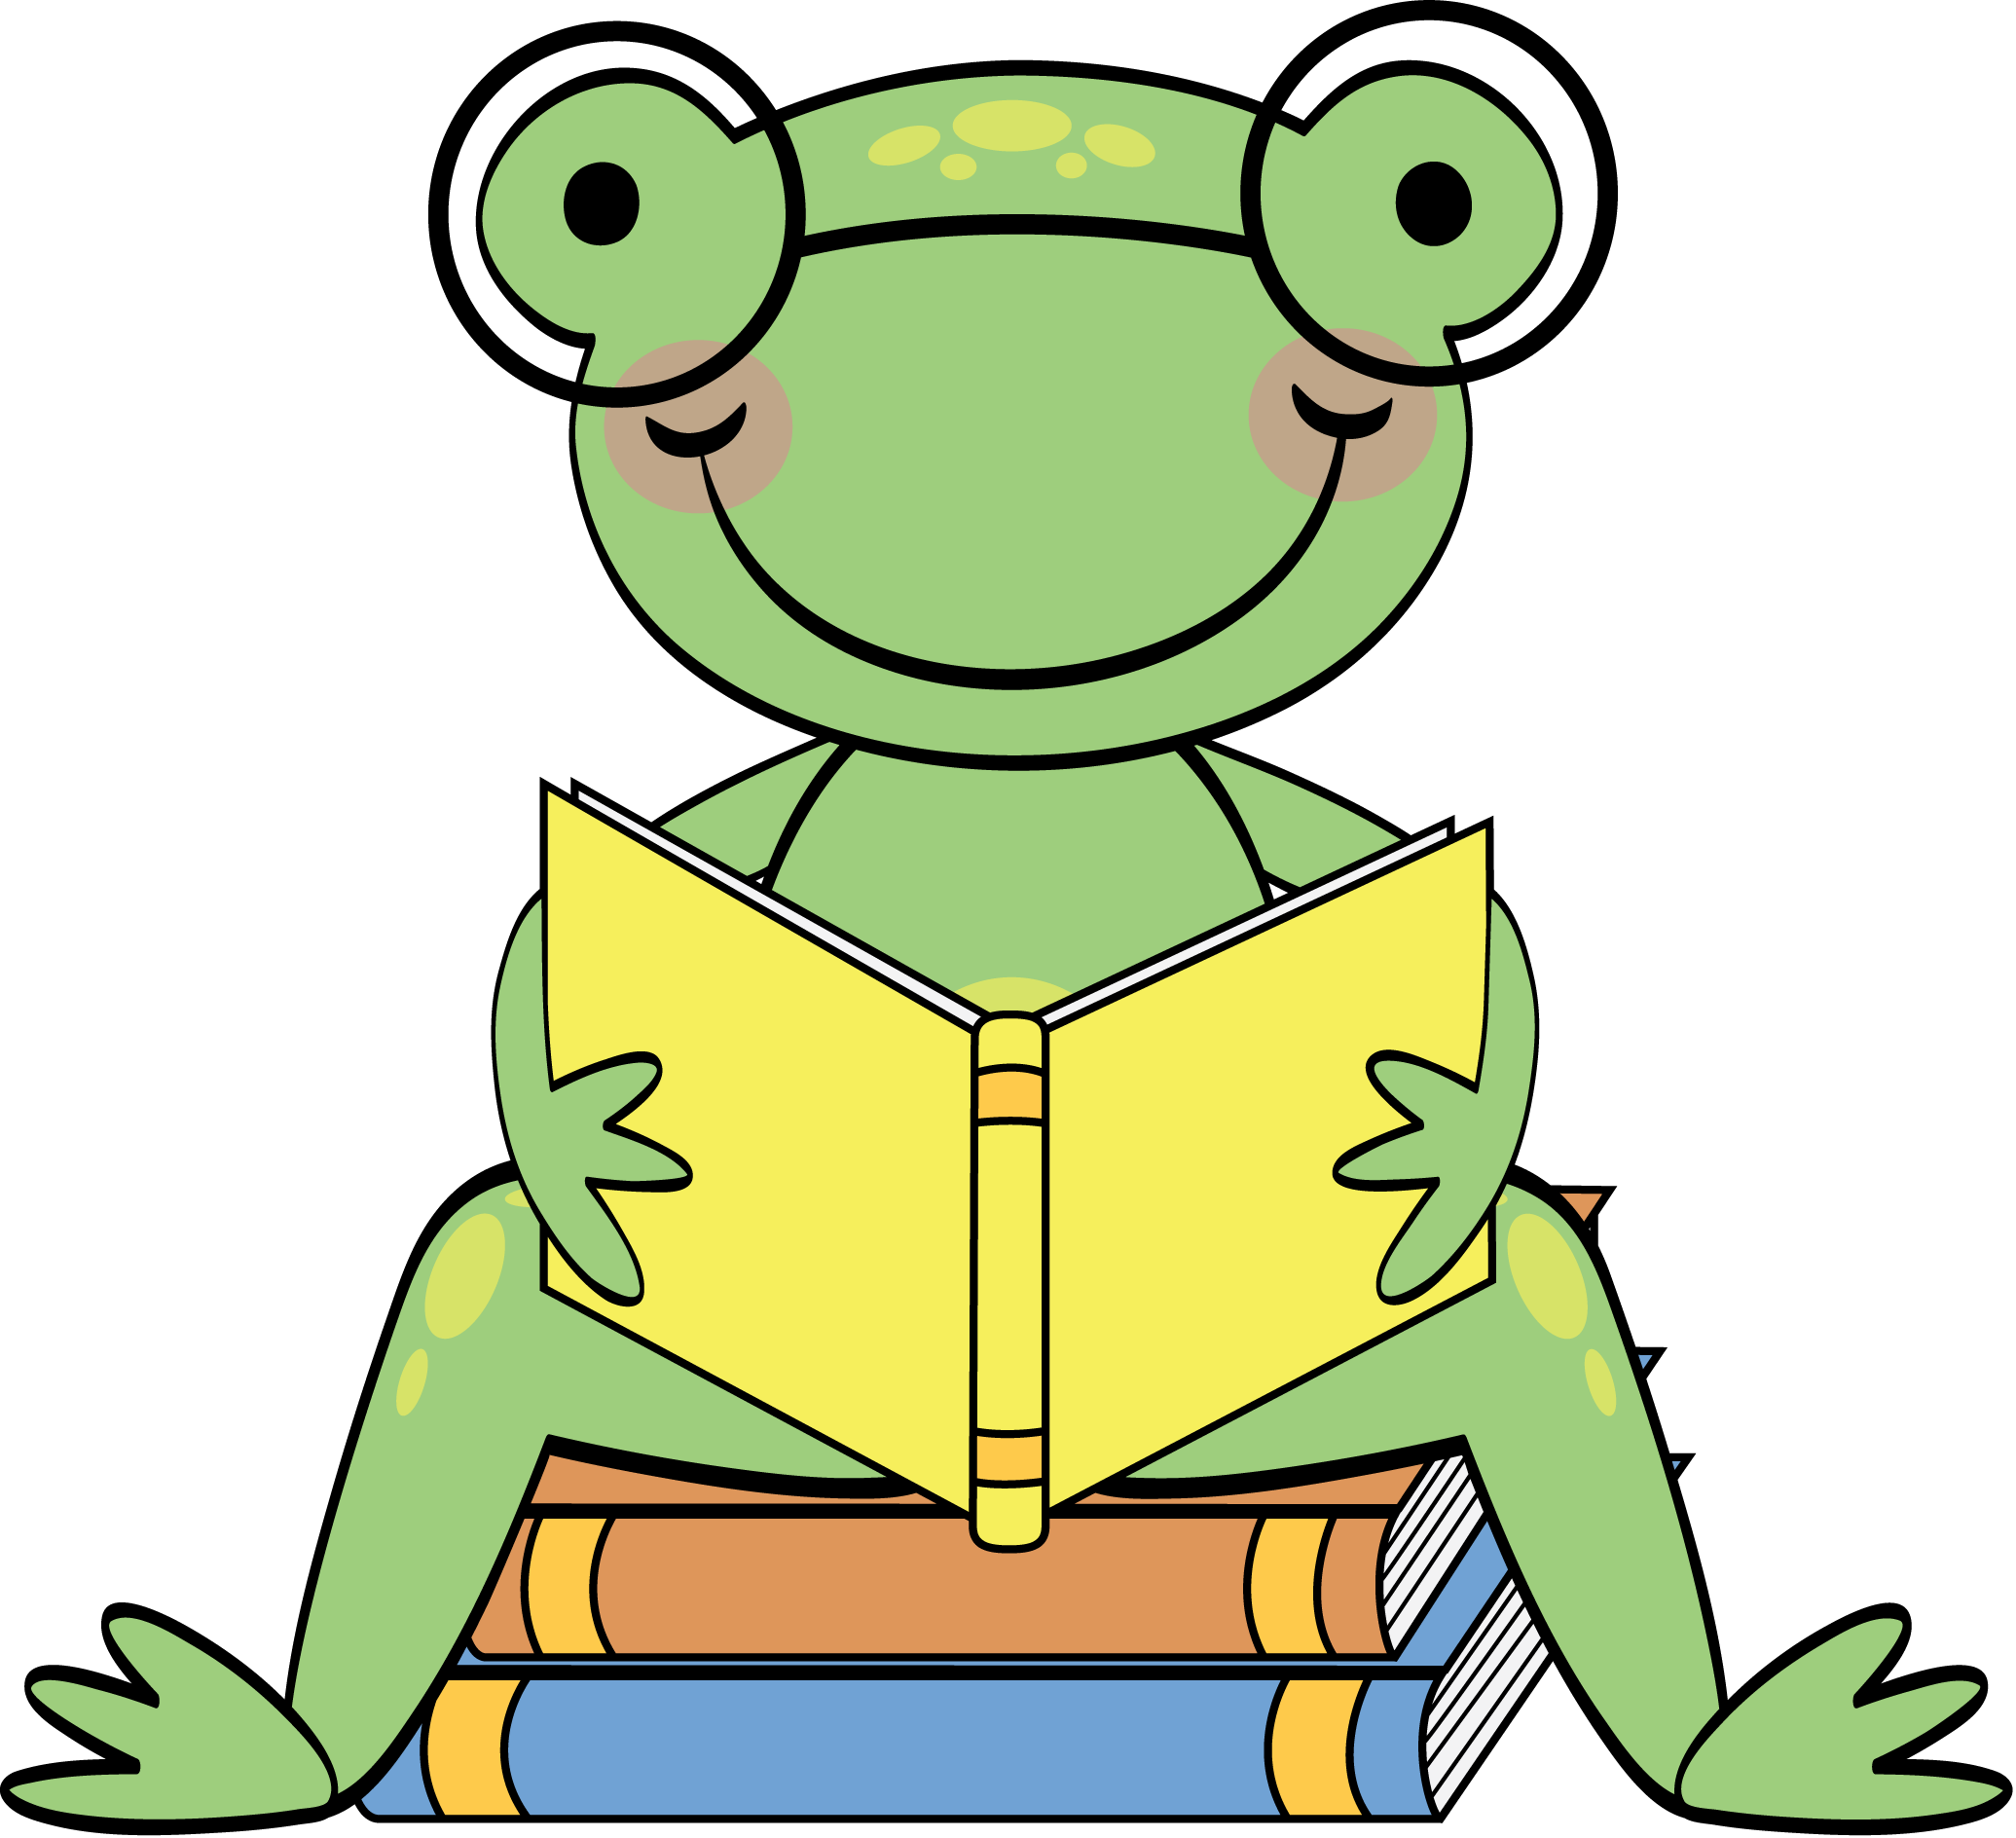 Frog with crown clipart picture library http://sunnydaypublishing.com/books/ | All about books and reading ... picture library